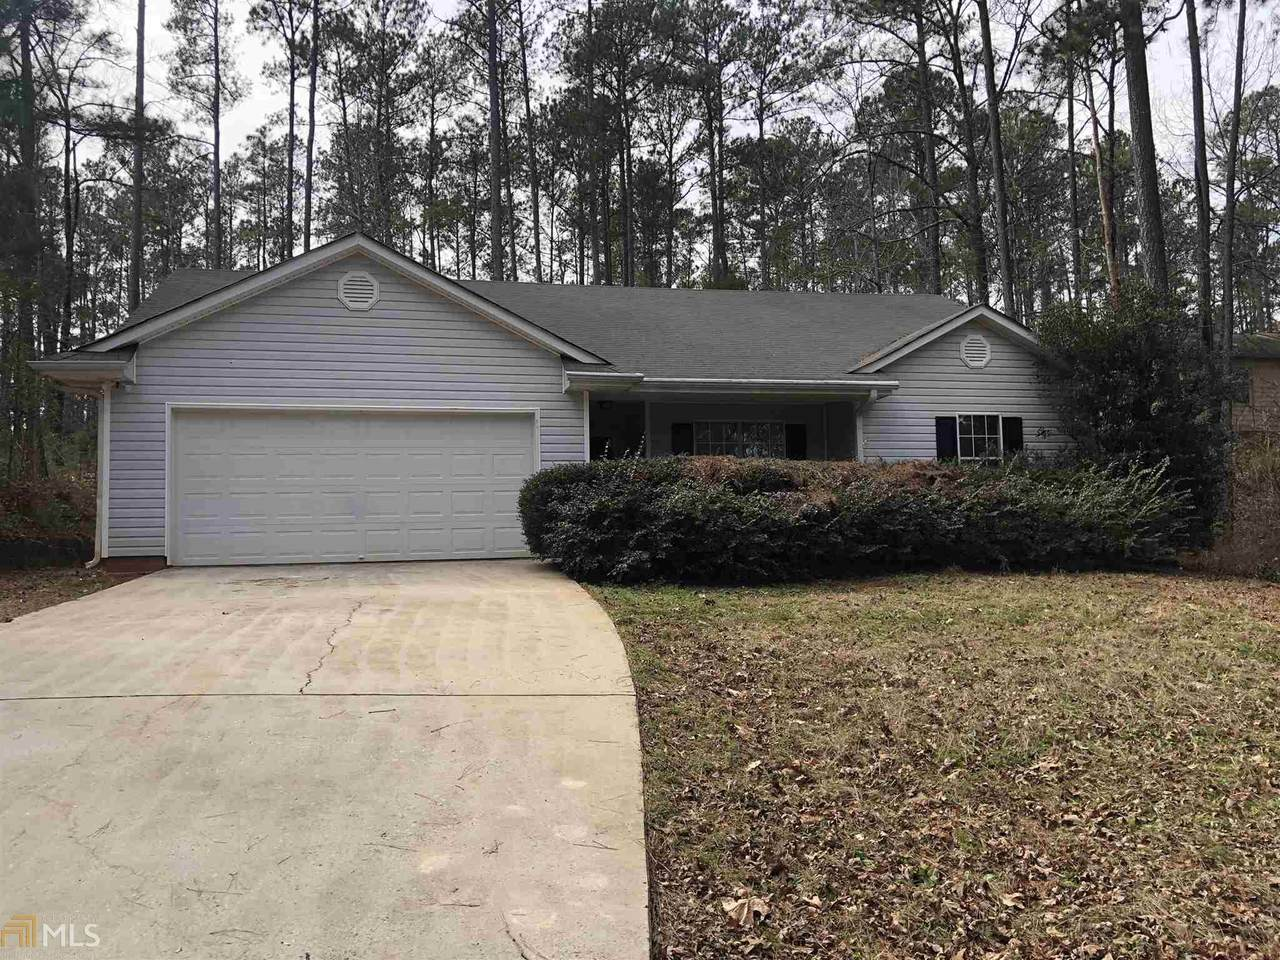 323 Mourning Dove Ct - Photo 1